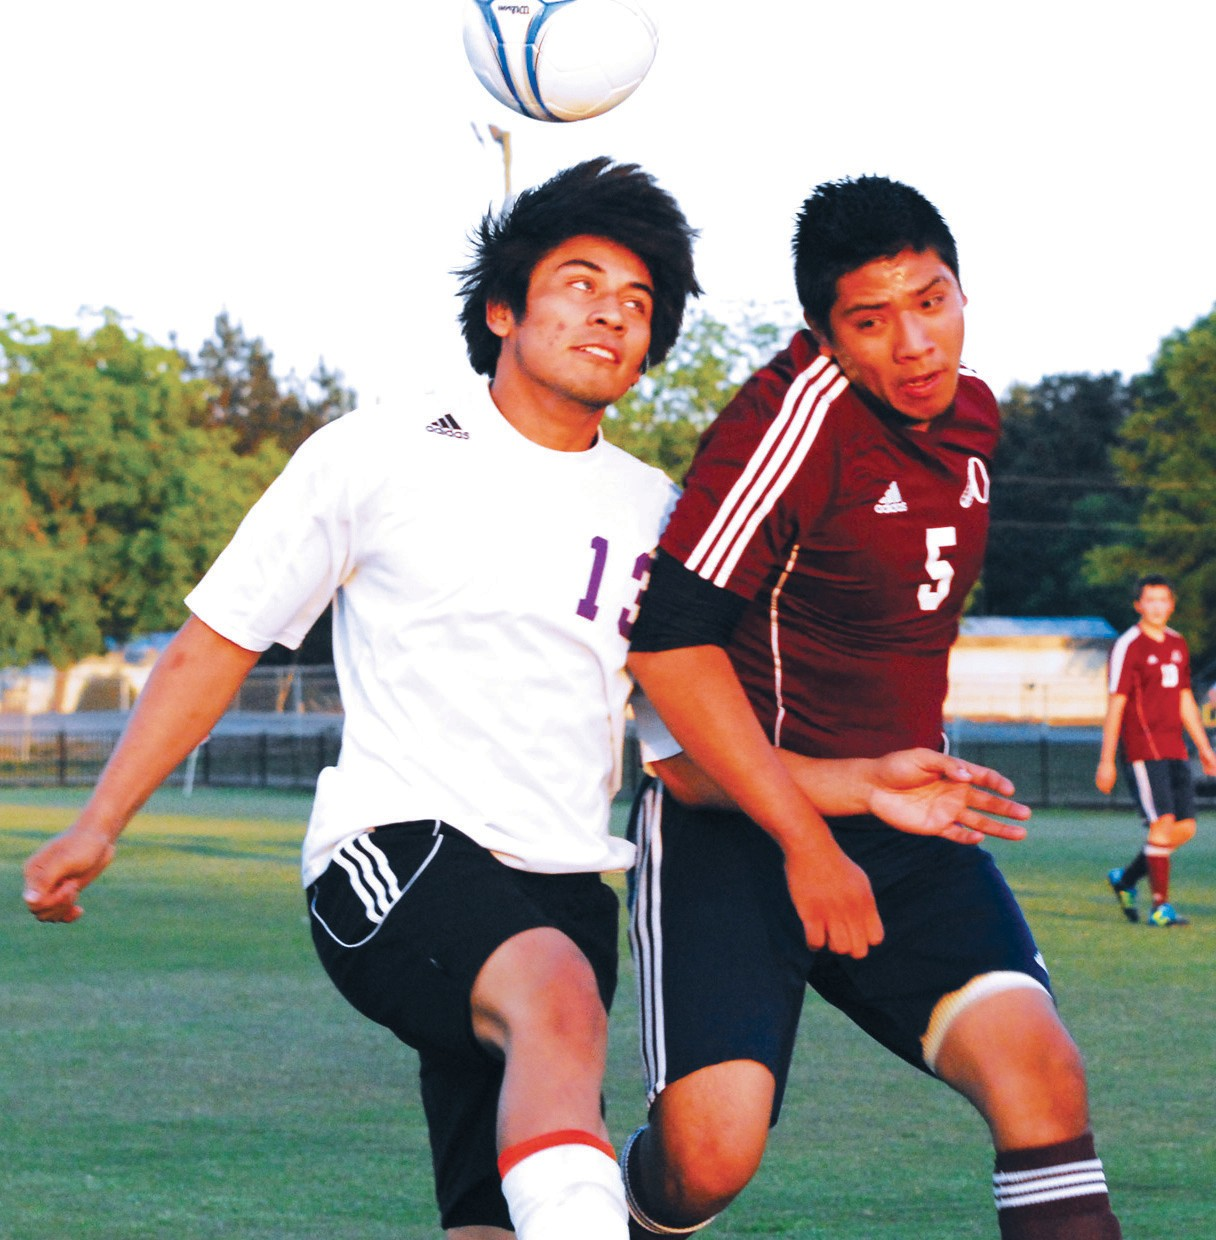 Susan Moore's Freddy Hernandez (left) and Oneonta's Alejandro Velazquez battle for the ball during last week's game at Susan Moore. The Bulldogs wrapped up an unbeaten regular season with a 4-0 win over the Redskins. Susan Moore is 10-0 on the year and has outscored its opponents 57-3. The Bulldogs, champions of Region 6, hosted Region 5 runner up Faith Christian of Anniston in the first round of the playoffs last night. The Oneonta girls, the Region 6 runner-up, traveled to Region 5 champion Jacksonville in a first round game last night. – Rob Rice